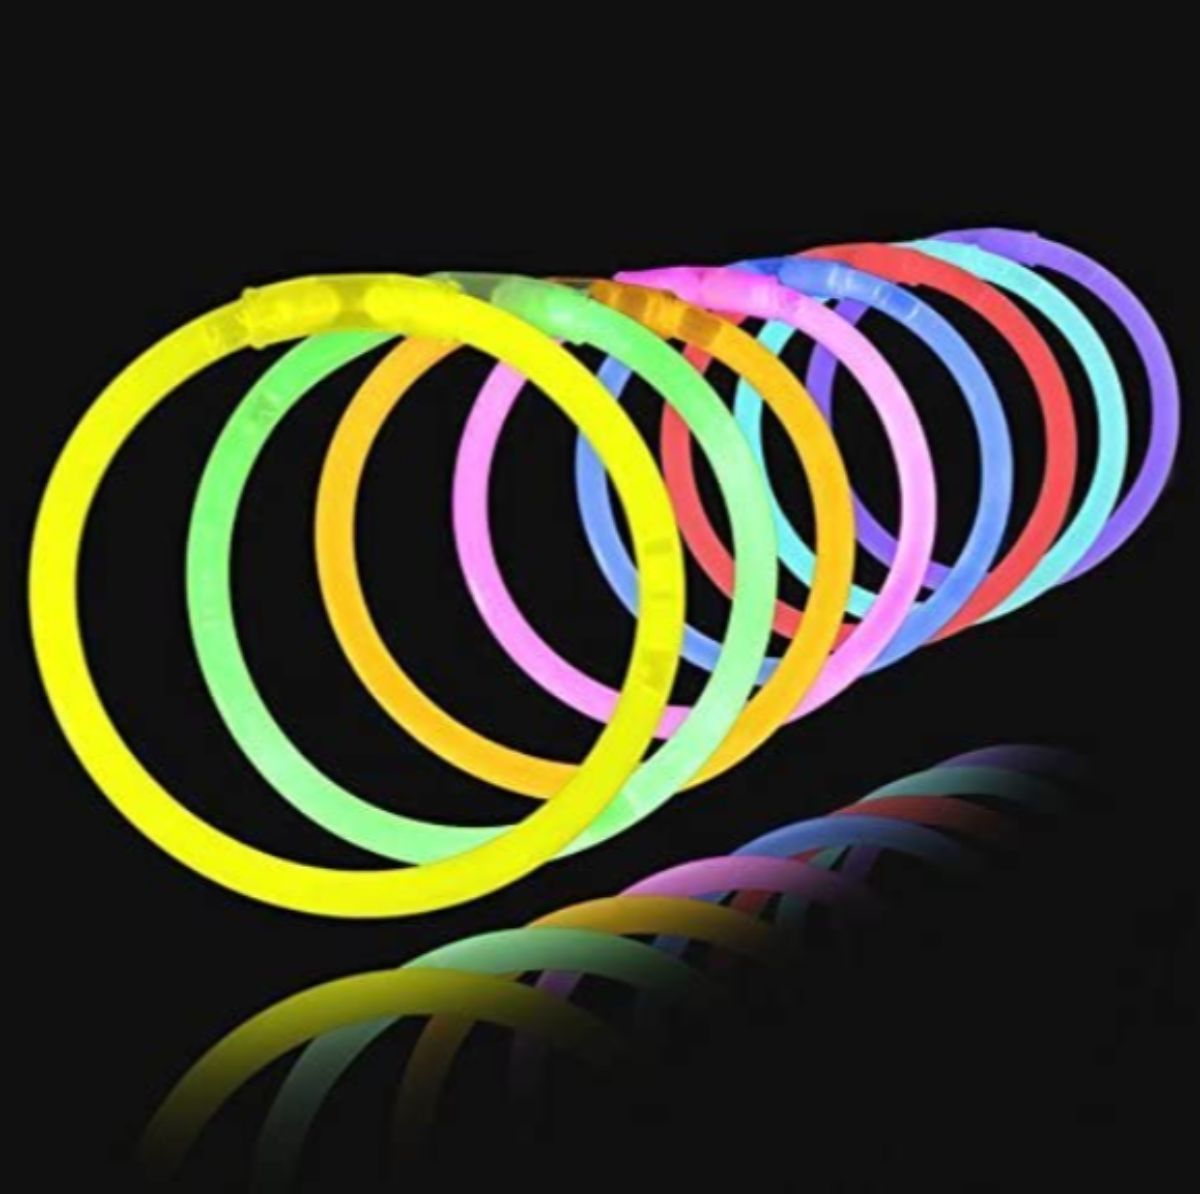 8 glow sticks fixed into rings